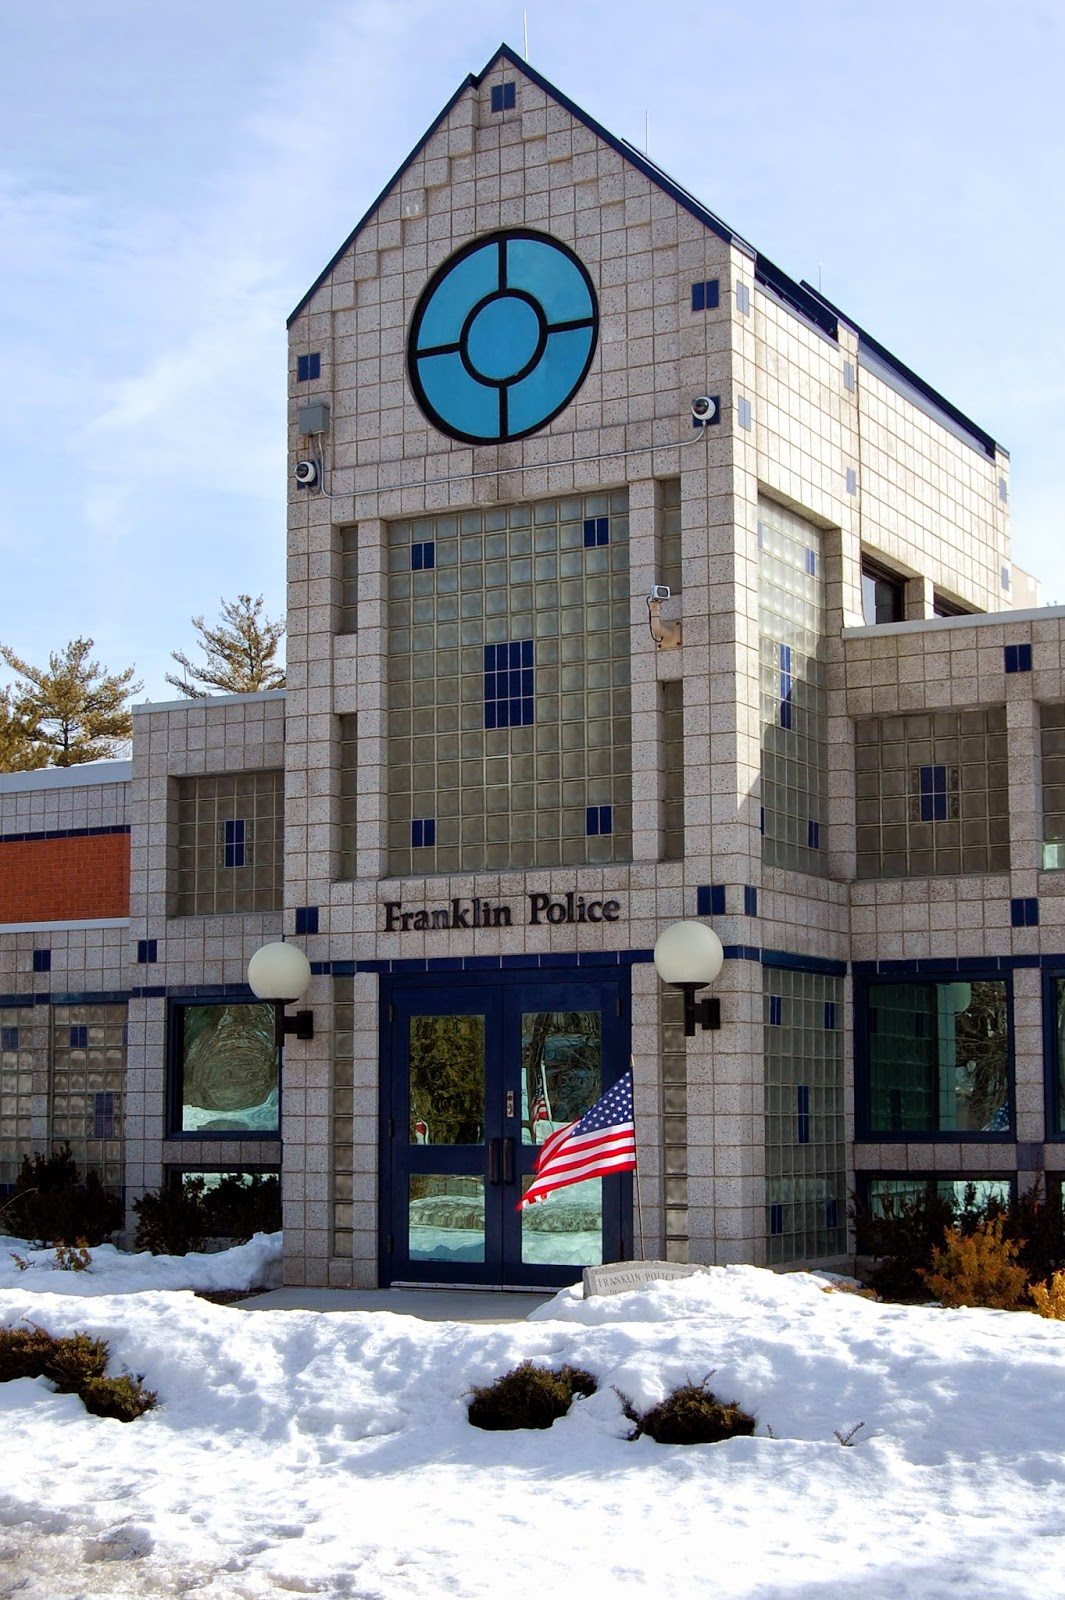 Franklin Police Station (Mar 2014 in snow)